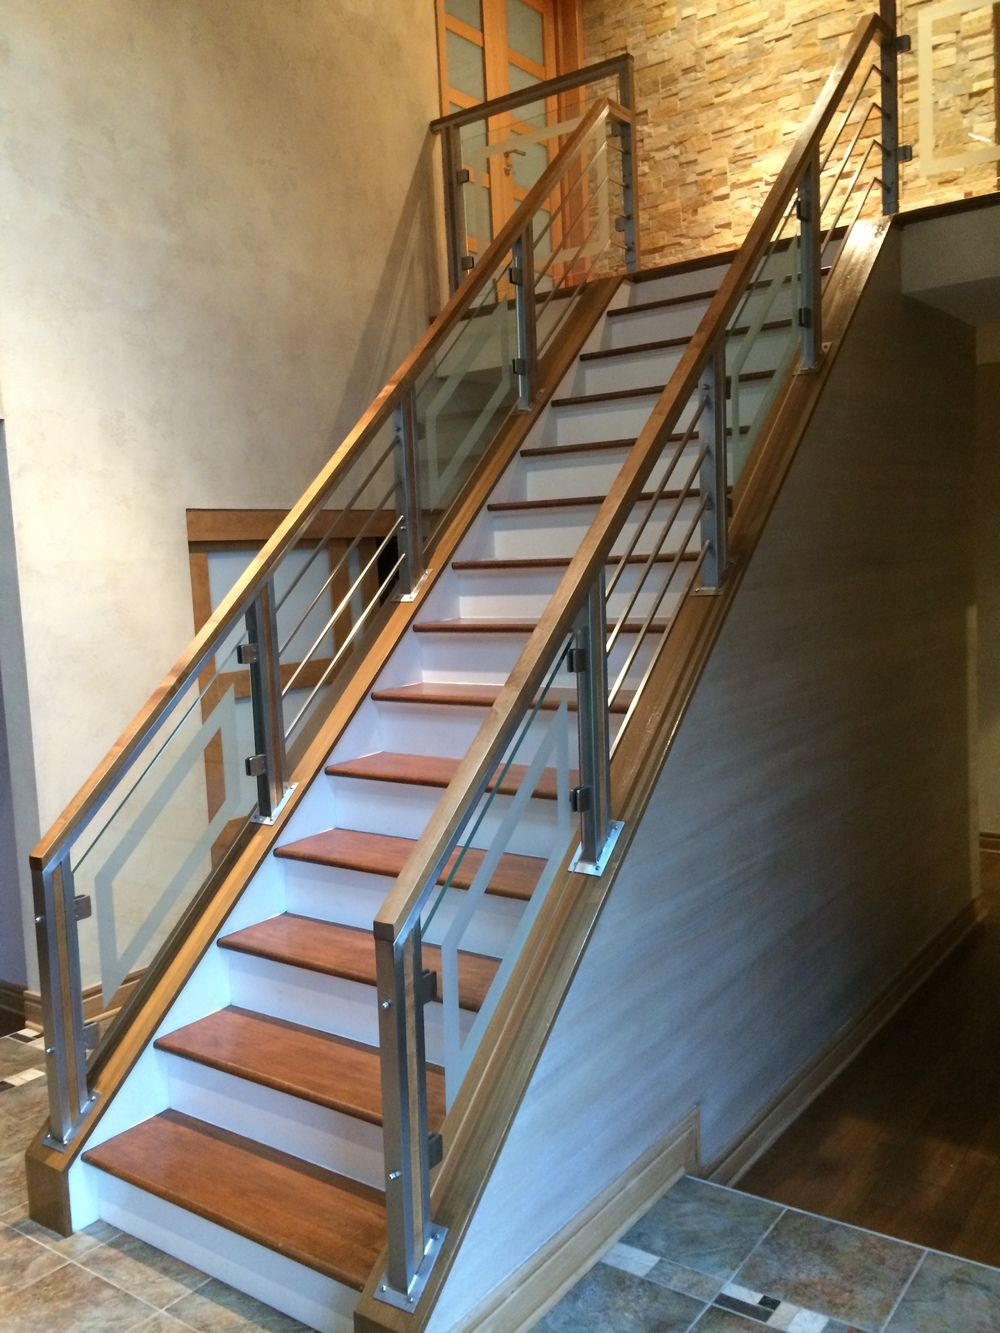 Stainless Steel Horizontal Rods And Glass Railing With | Steel Railing With Glass For Stairs